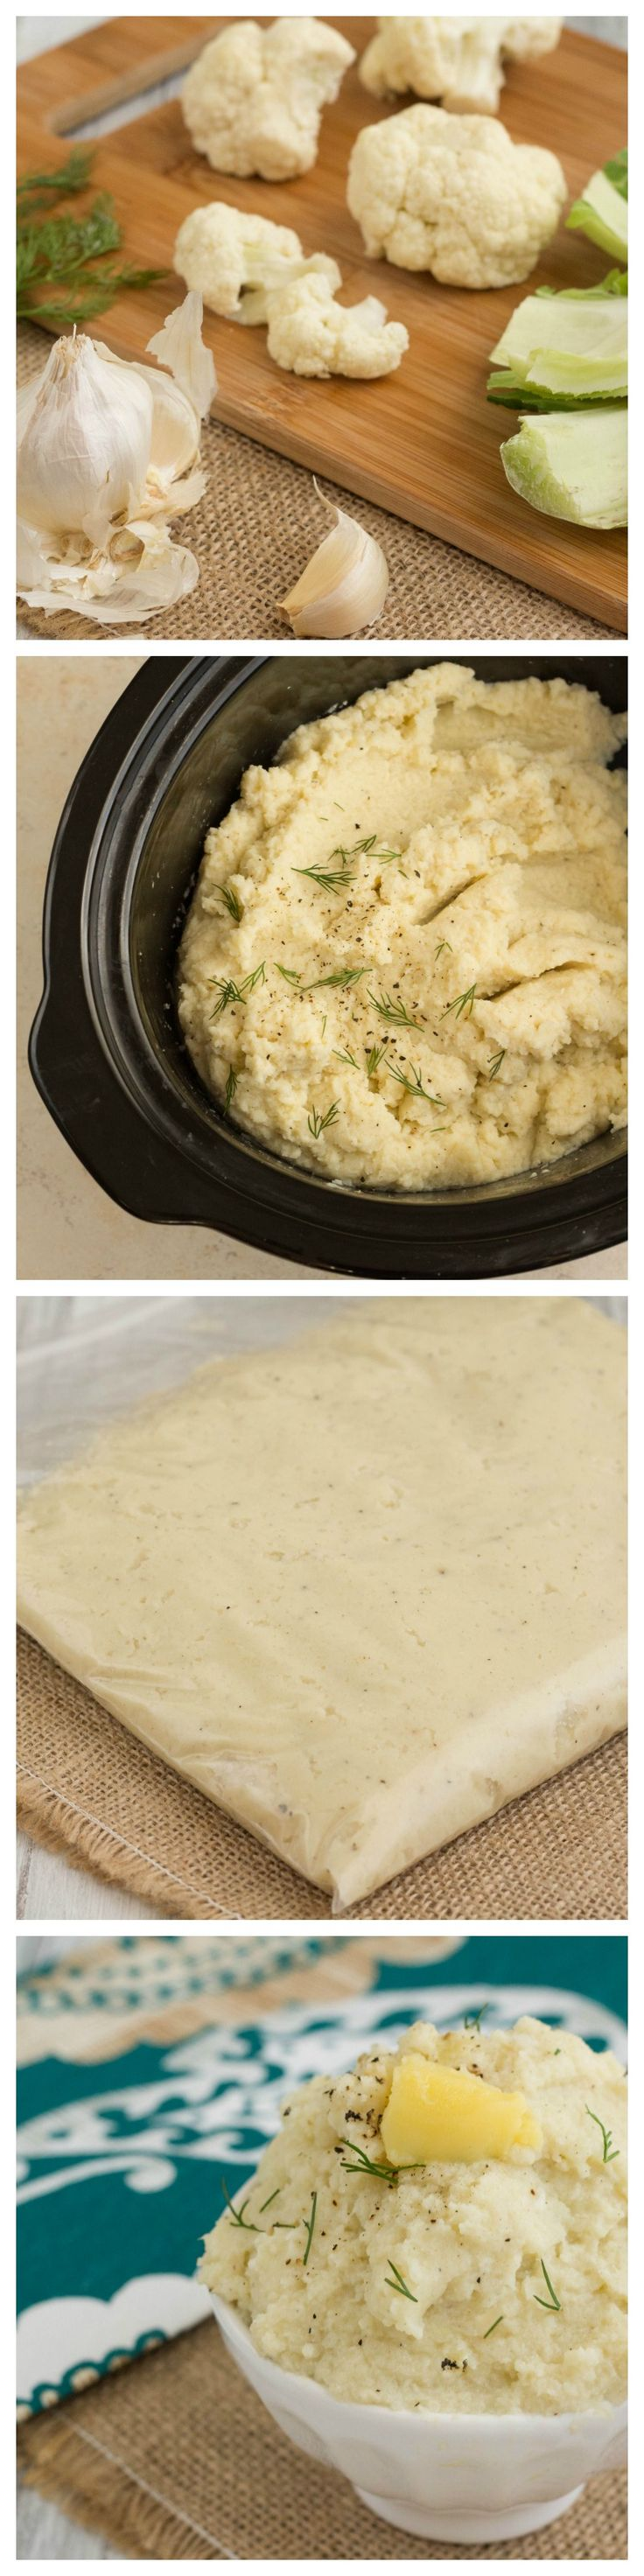 Make Ahead Slow Cooker Cauliflower Mash #lowcarb #paleo